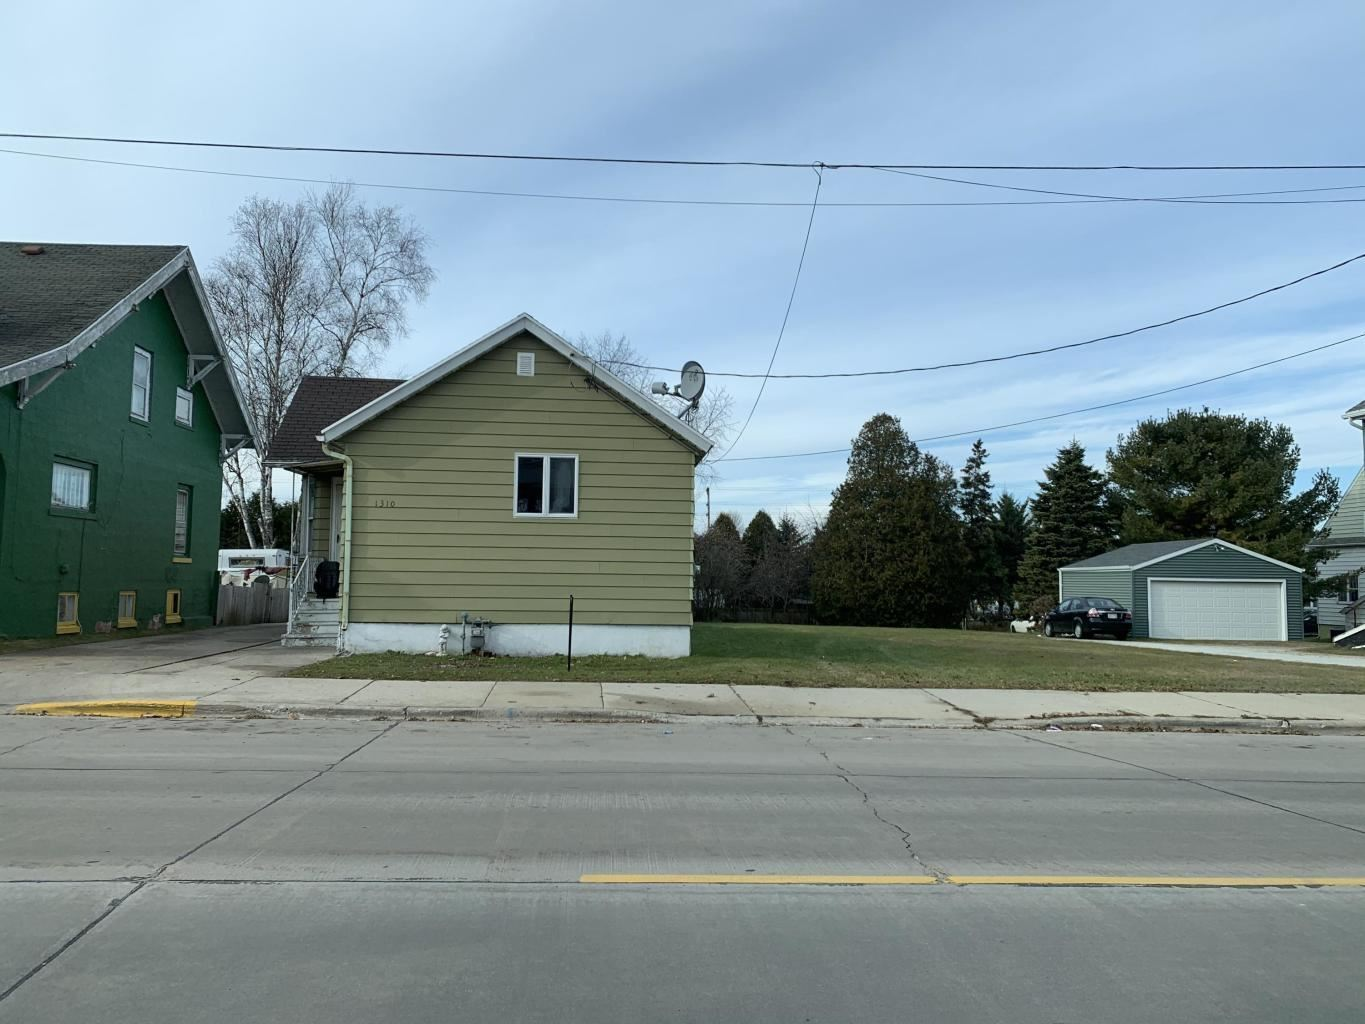 1310 Madison St, Two Rivers, WI 54241 - #: 1697235